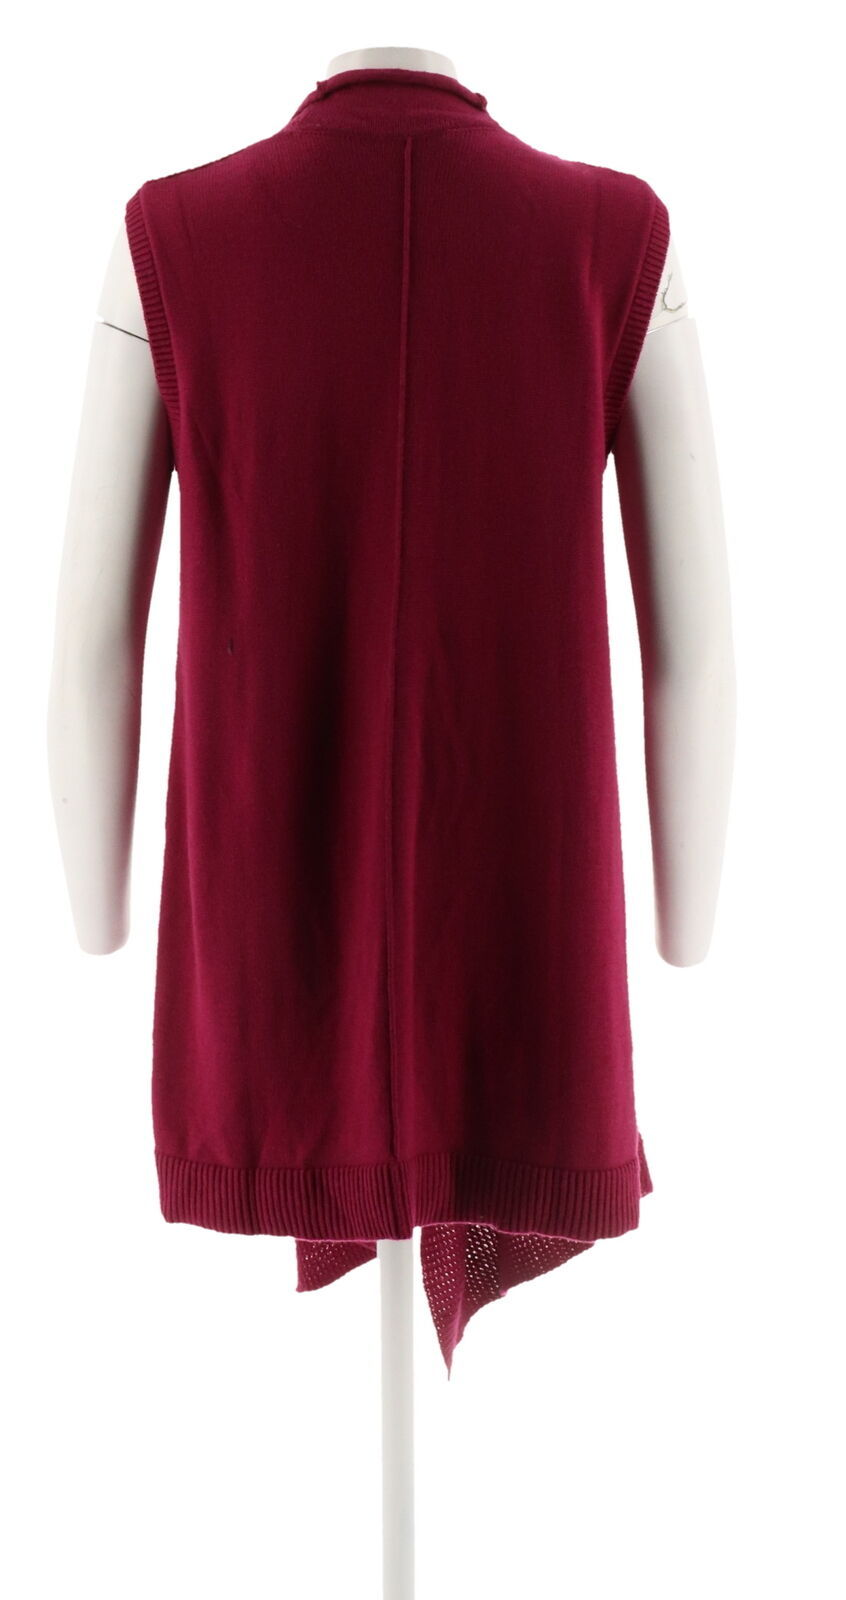 Halston Waffle Stitch Cascade Collar Sweater Vest Dark Raspberry L NEW A272363 image 3